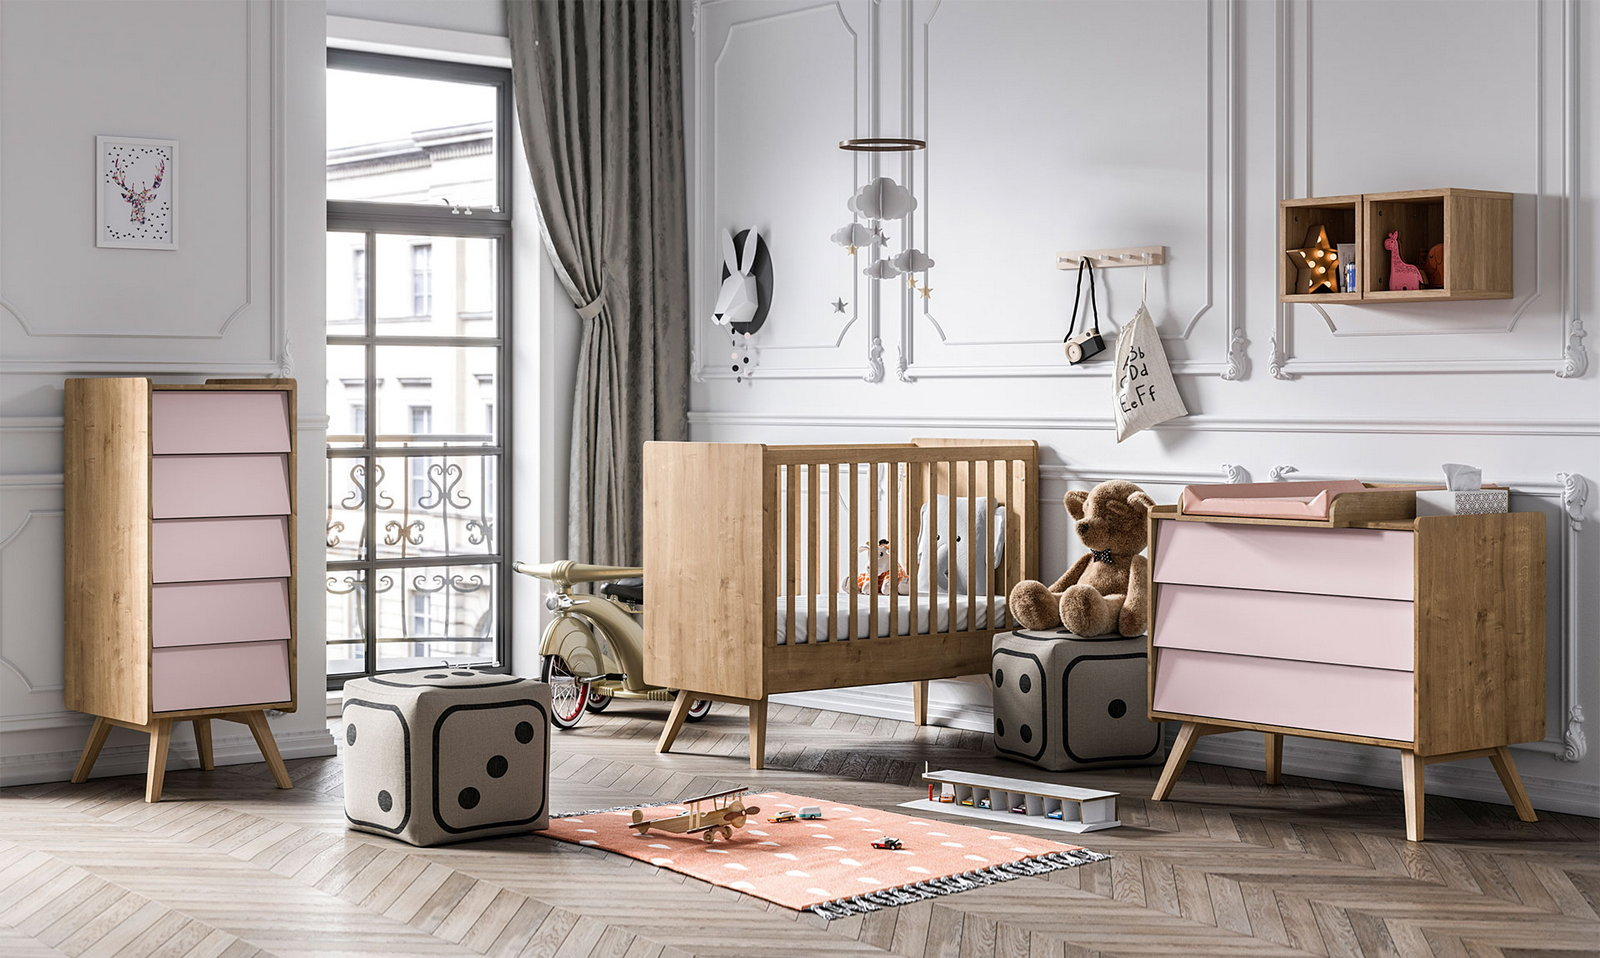 BABY VOX Vintage - 3 meubles - lit 140x70, commode, chiffonnier